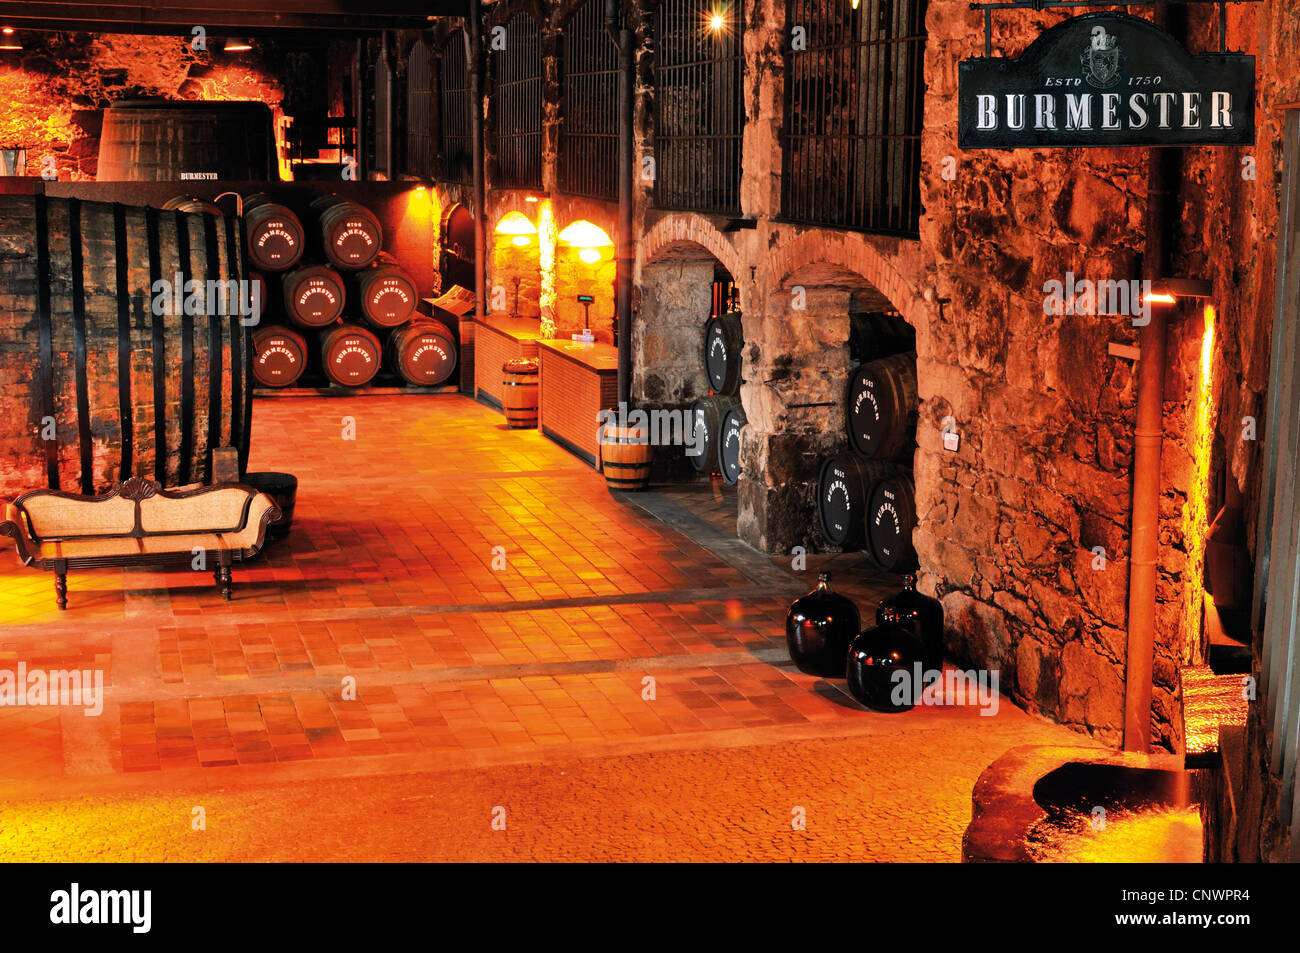 Portugal Traditional Port Wine Producer And Wine Cellar Burmester Stock Photo Alamy